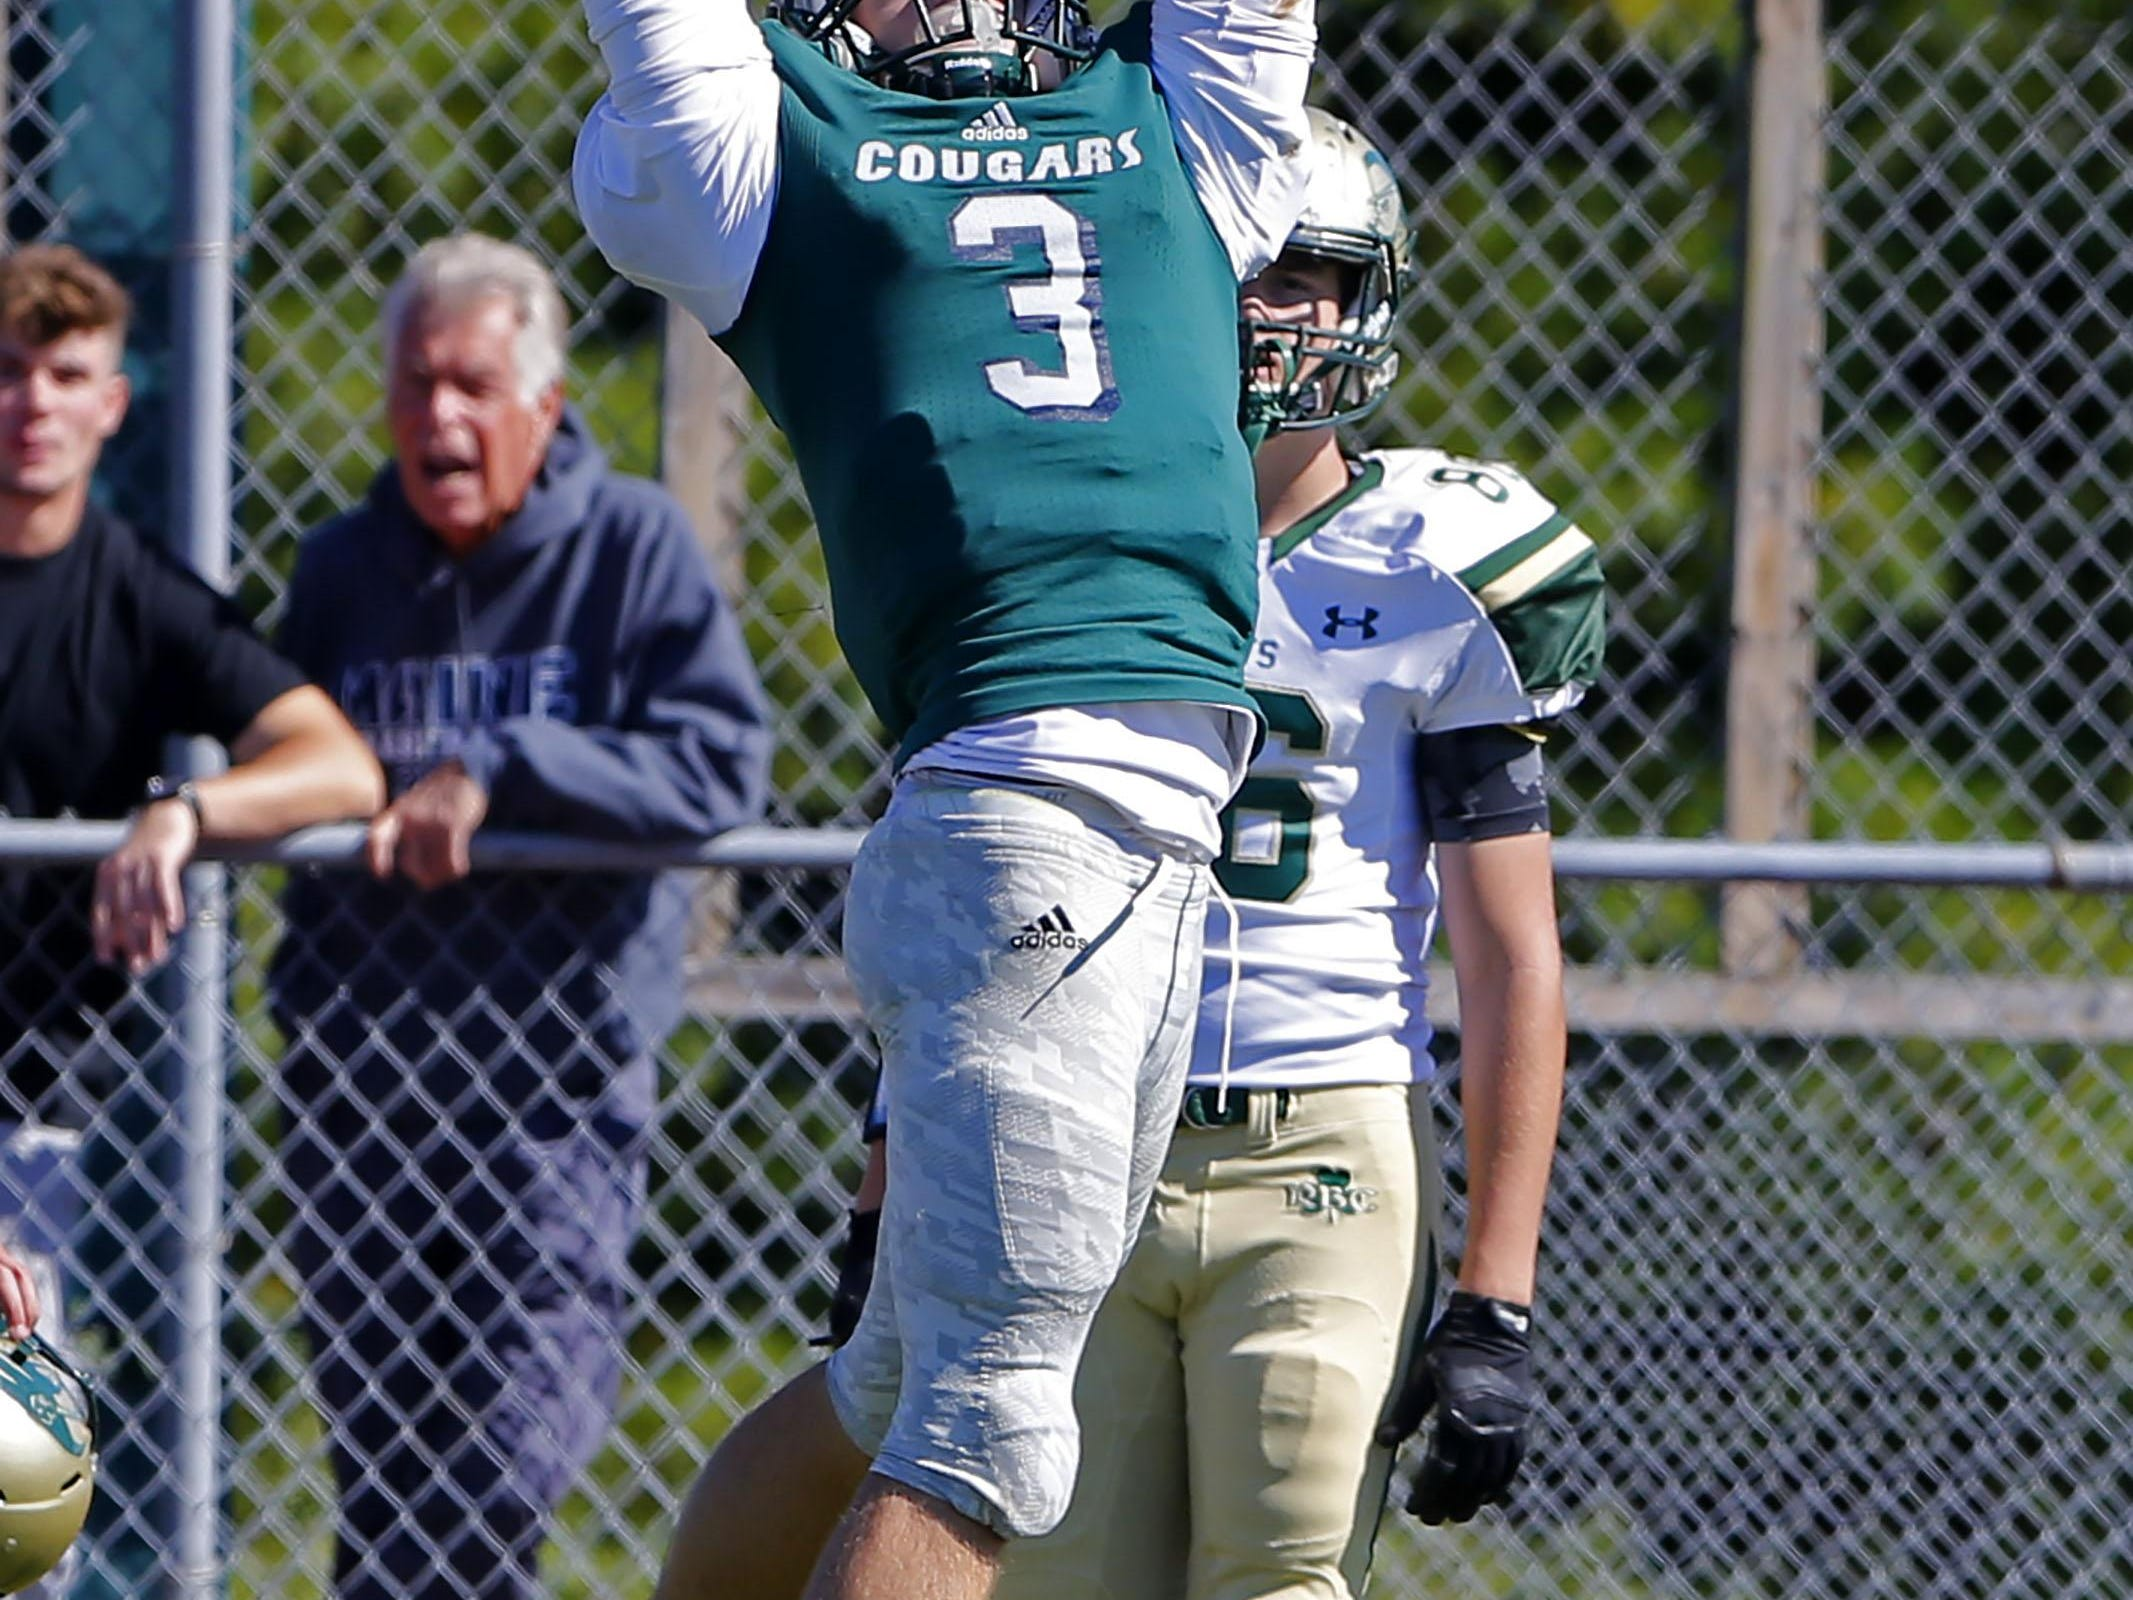 Matt Volk (3) of Colts Neck has the ball go throw his hands during game against Red Bank Catholic at Colts Neck High School, Colts Neck,NJ. Saturday, October 10, 2015. Noah K.